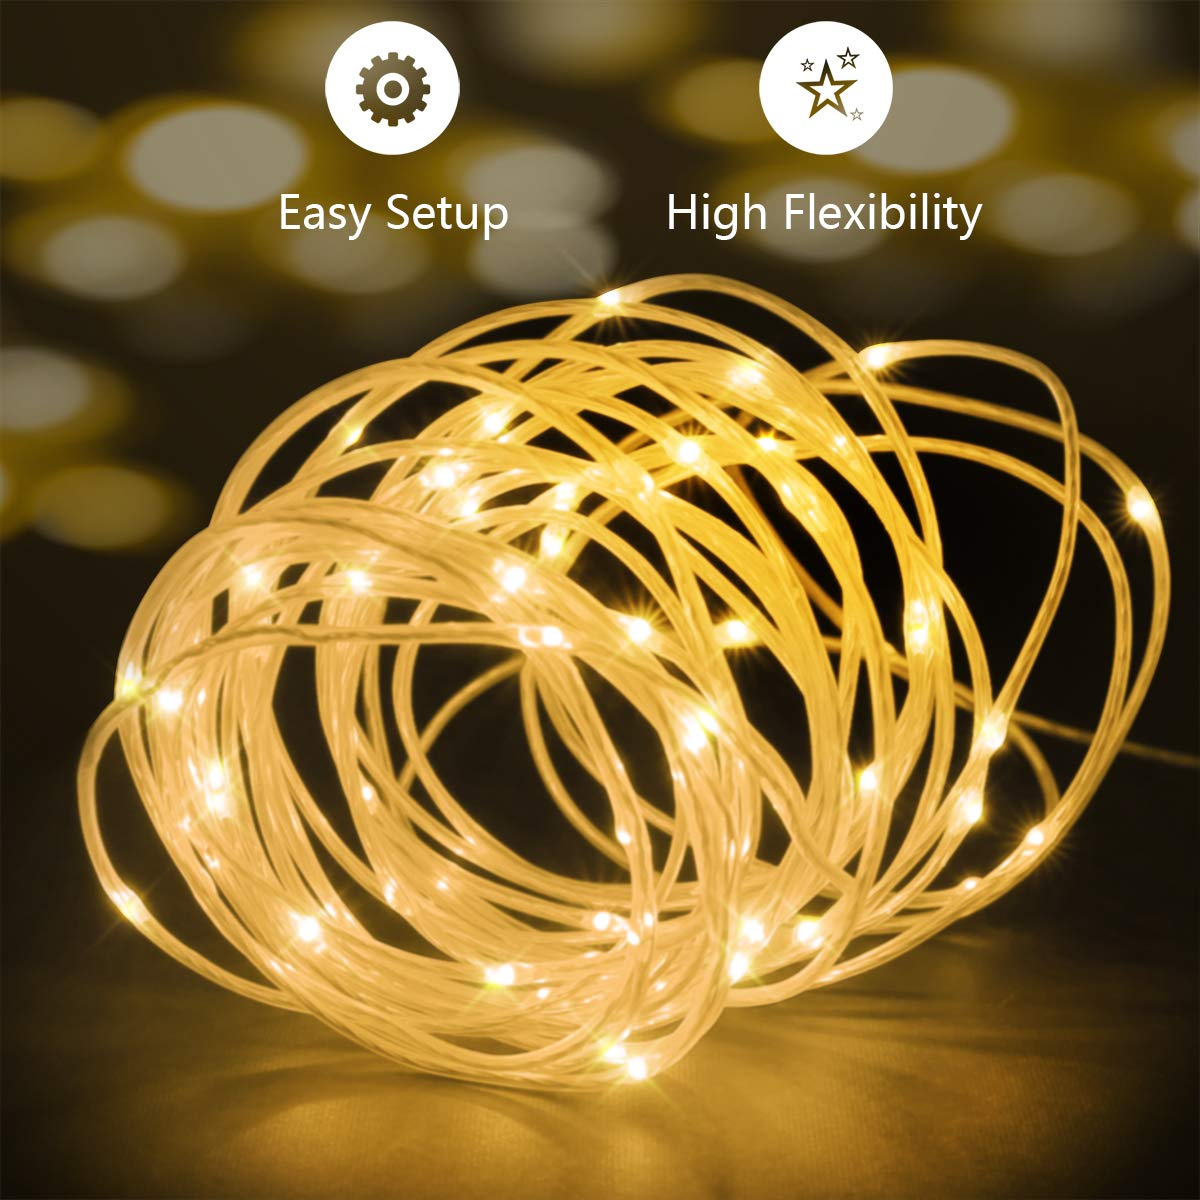 66ft Led Rope Lights Outdoor String Lights with 200 LEDs,16 Colors Changing Waterproof Starry Fairy Lights Plug in for Bedroom,Indoor,Patio,Home Decor by Omika (Image #4)